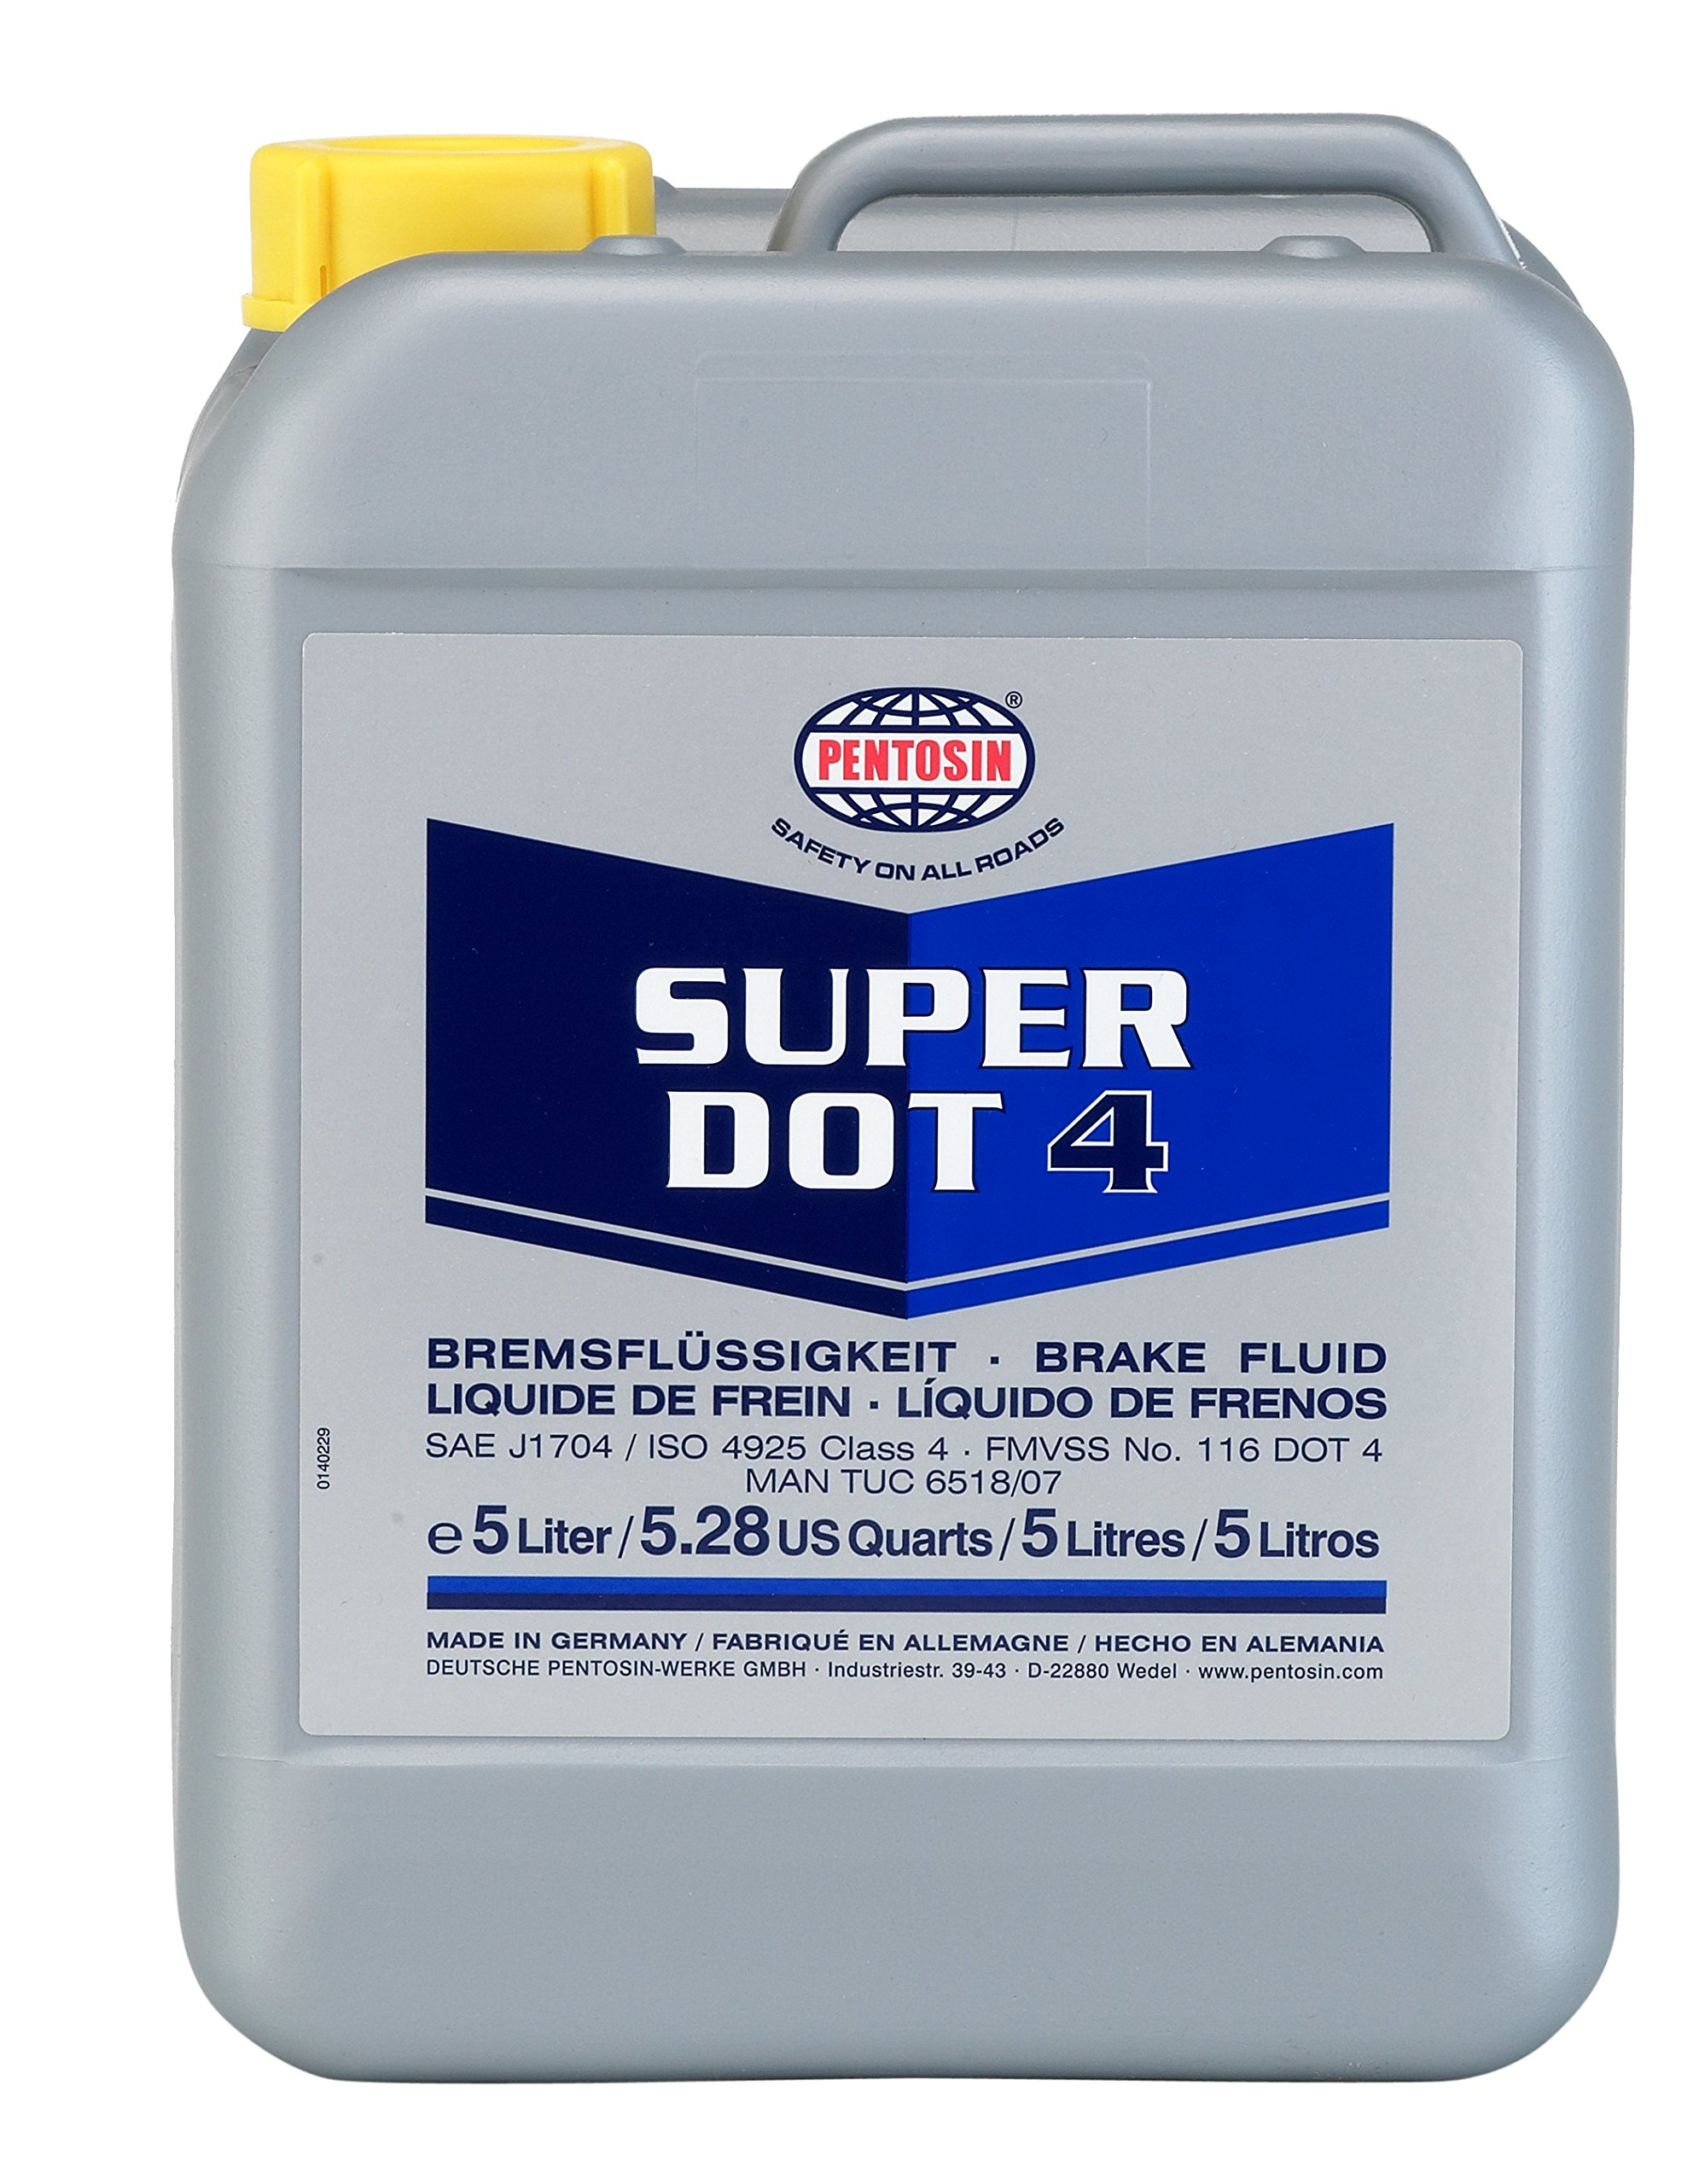 Pentosin 1204204-C Super Dot 4 Brake Fluid, 5 Liter (Case of 4 ) by CRP Automotive